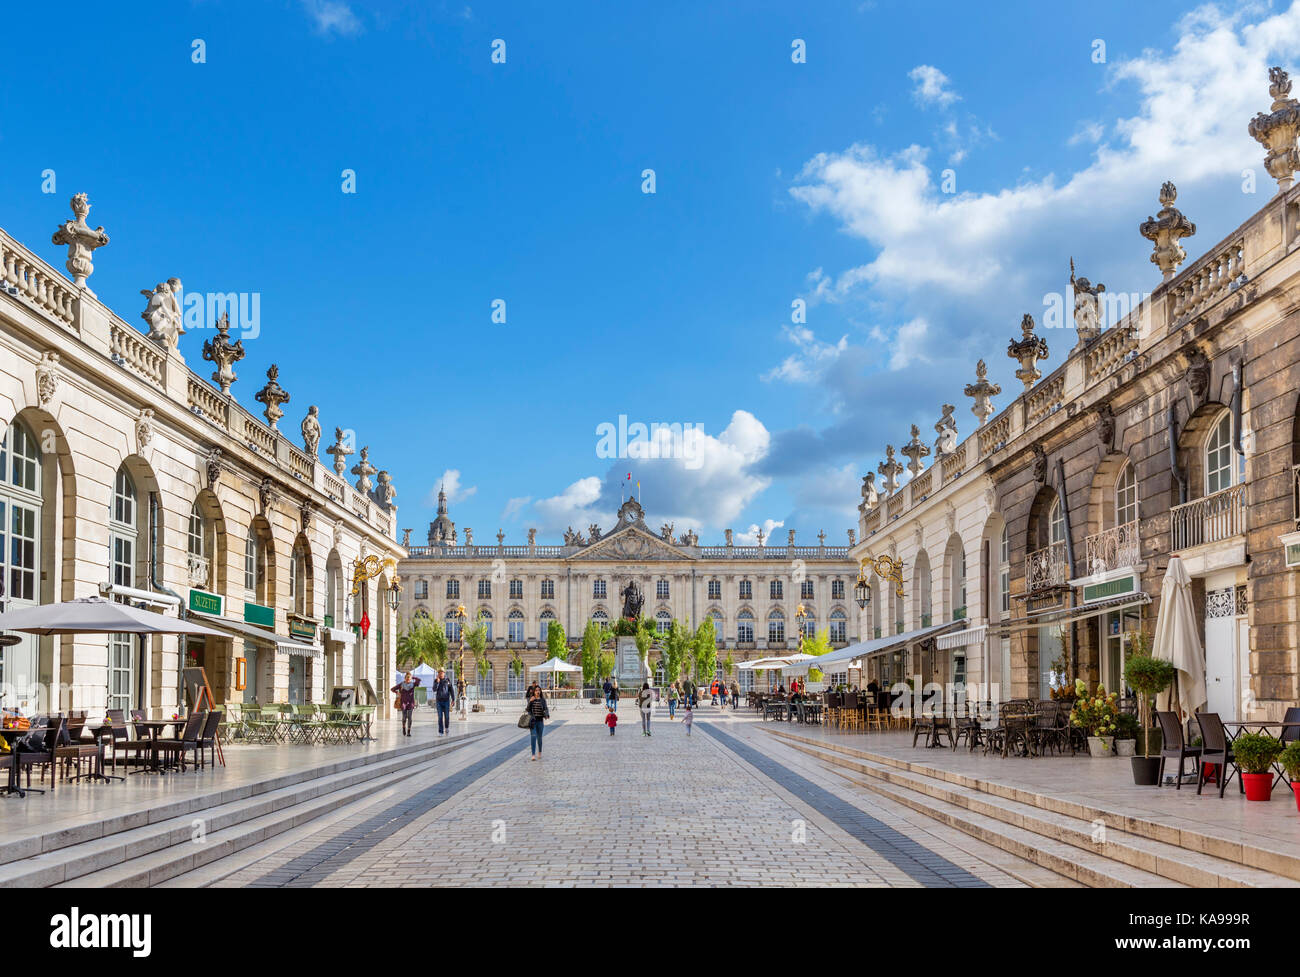 Rue Héré looking towards the Town Hall on Place Stanislas, Nancy, Lorraine, France - Stock Image